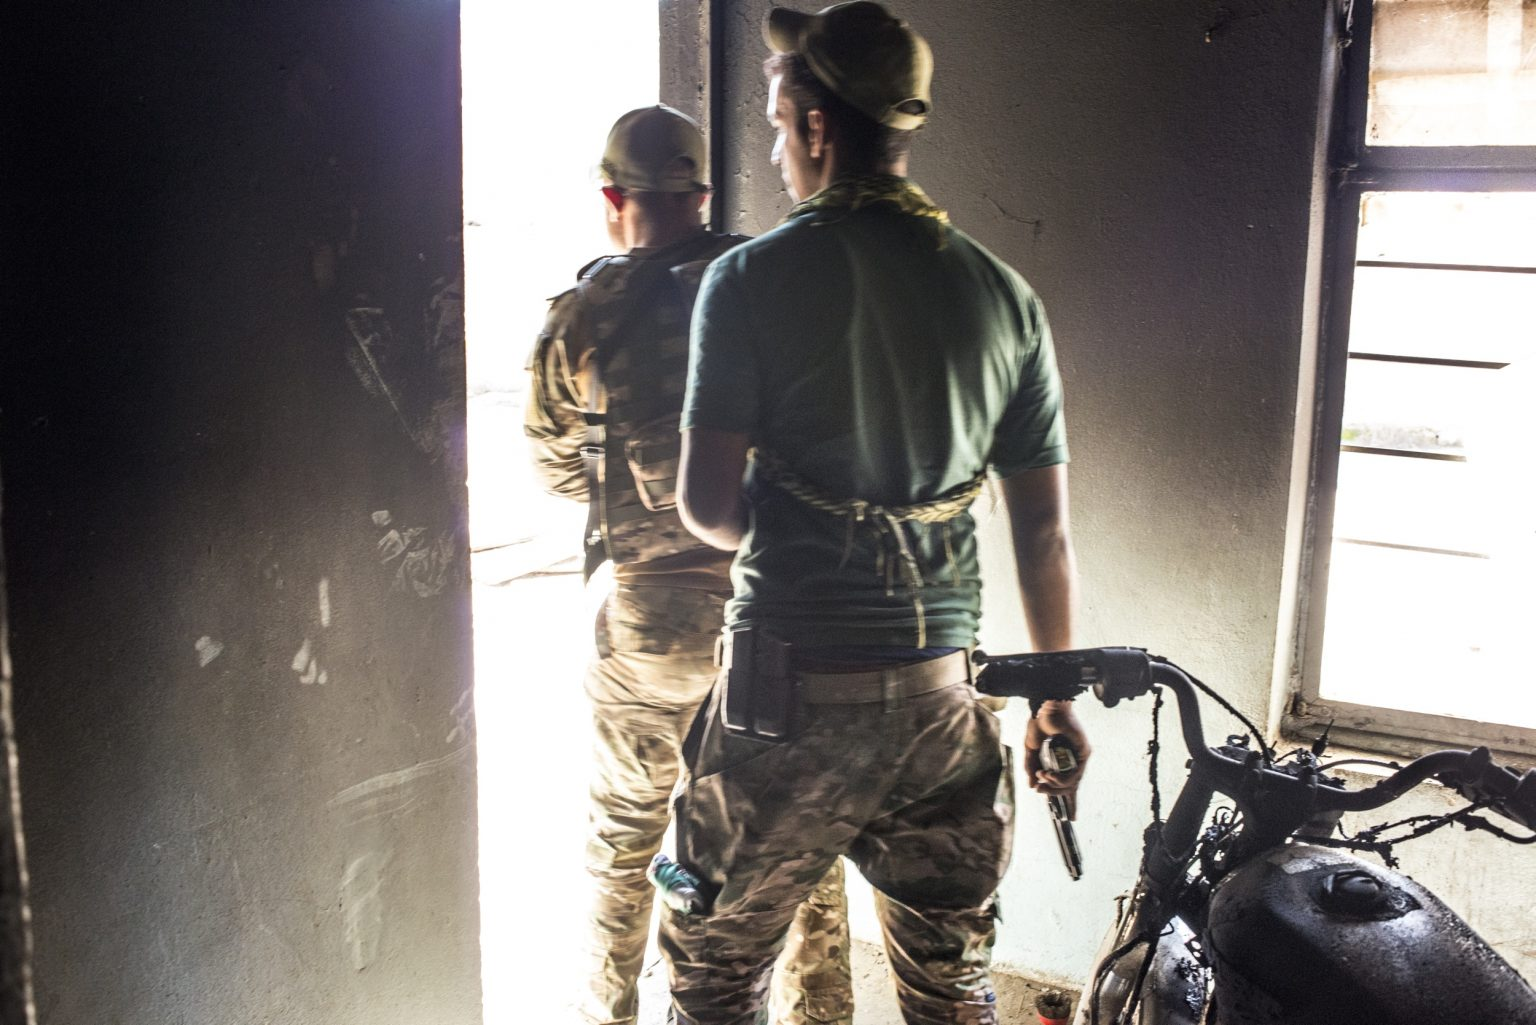 Memebrs of the Iraqi Special Forces inside a building, in Soutwest Mosul. Iraq, 2017